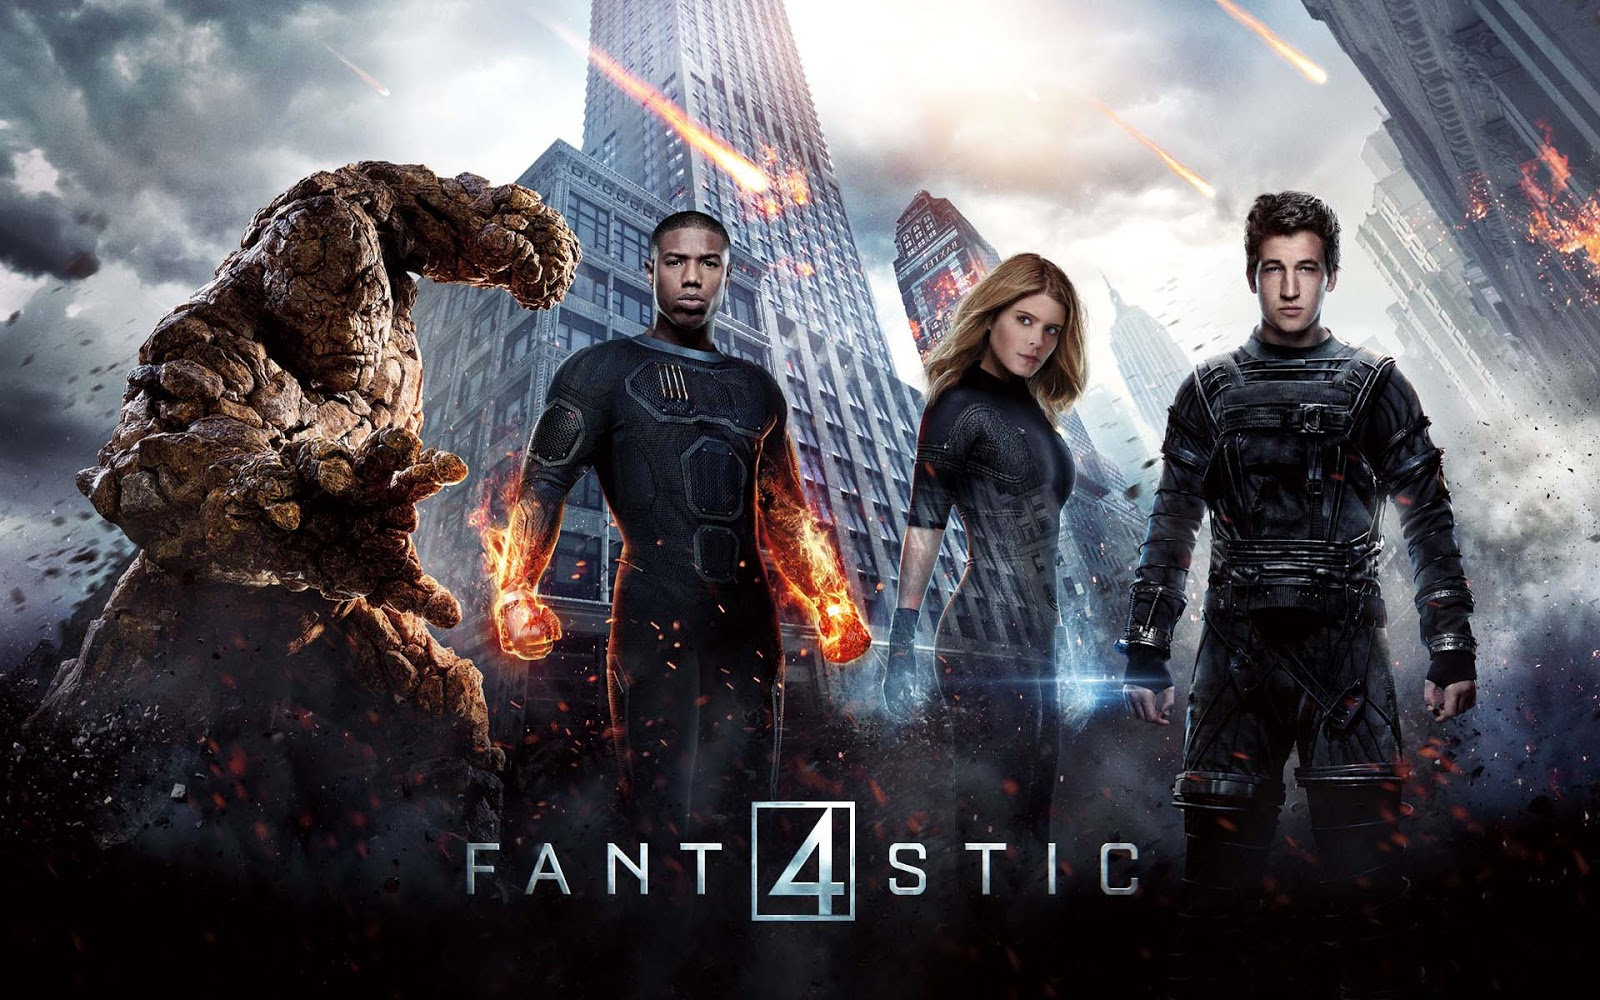 fantastic 4 2015 full movie in hindi watch online free